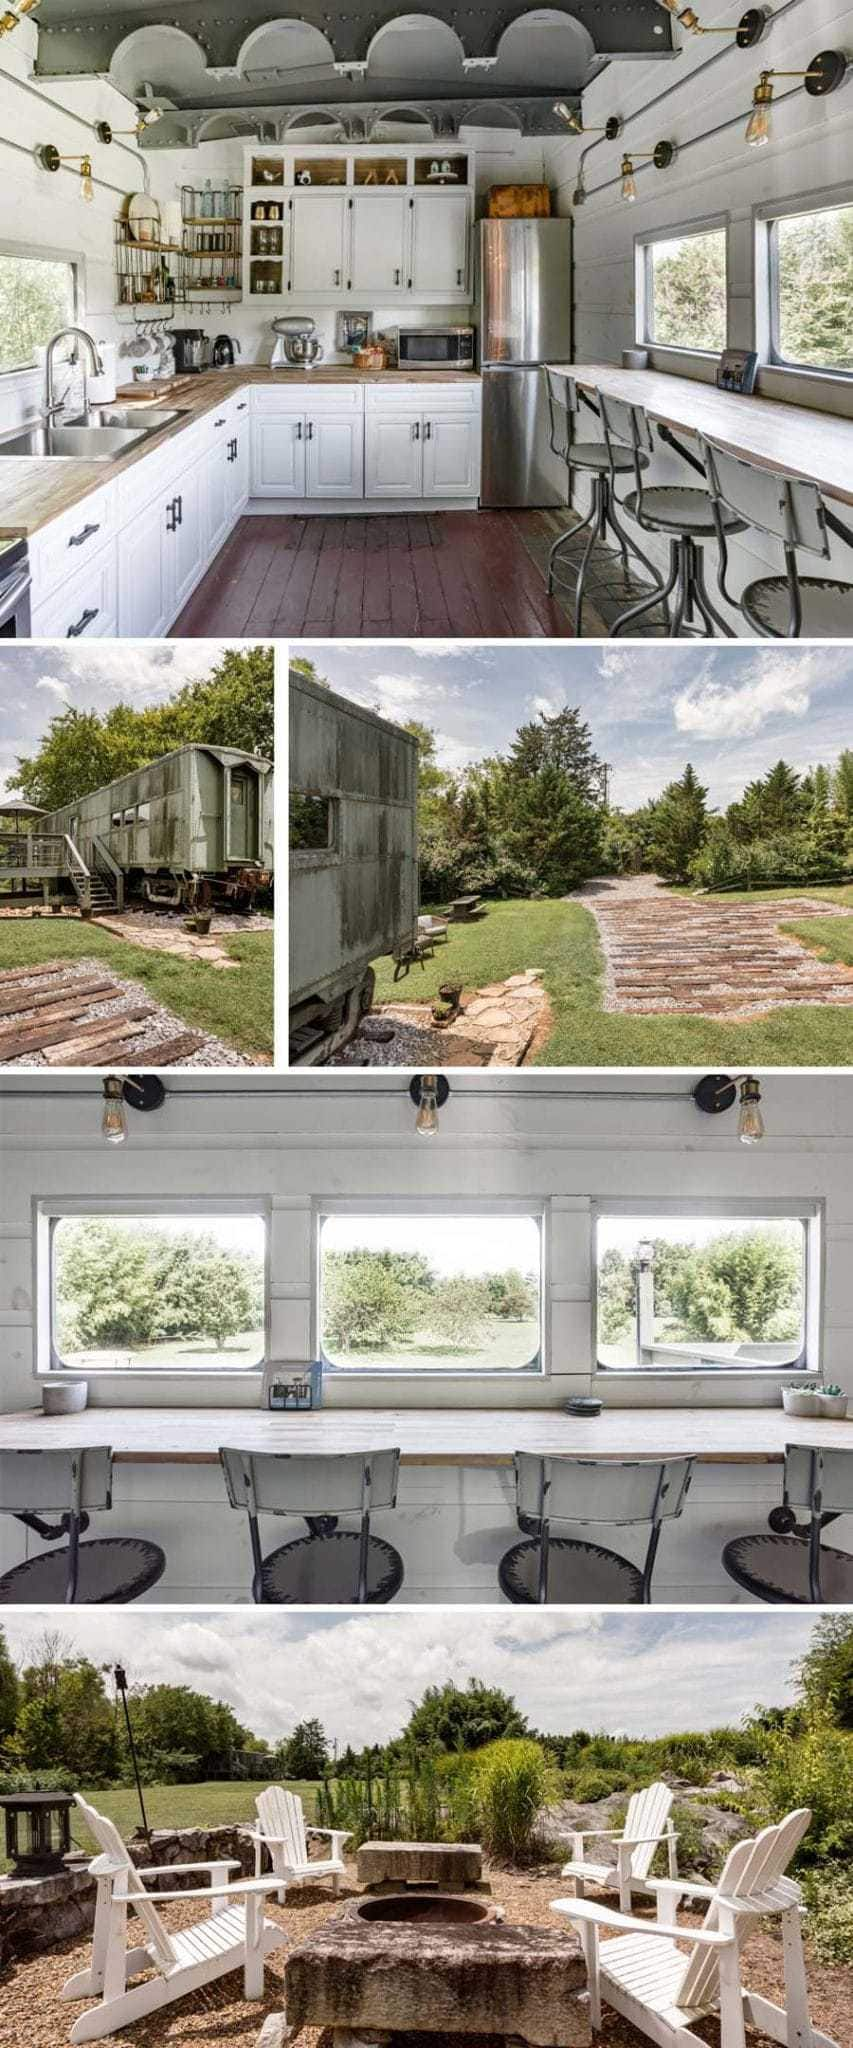 Converted WWII train Airbnb in Tennessee